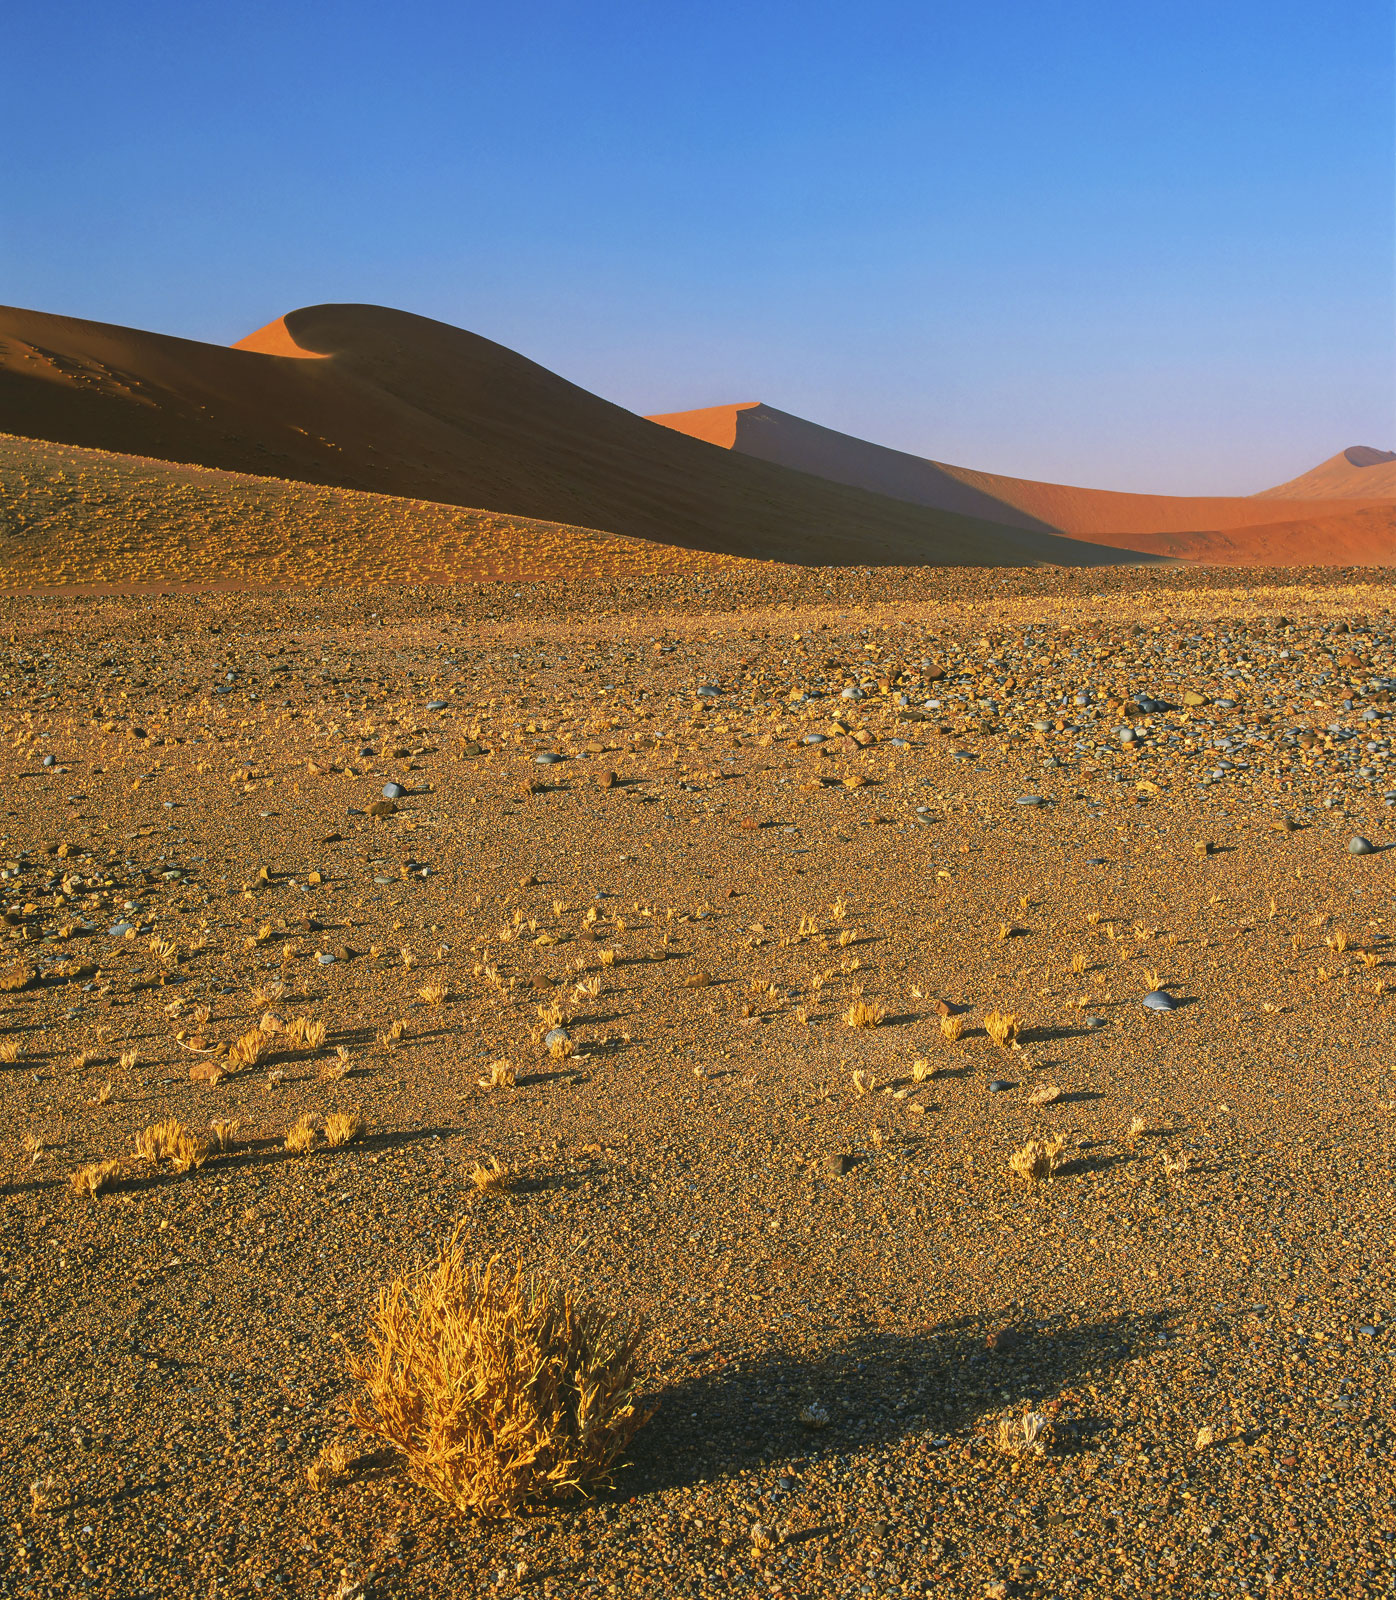 Barren, Sossusvlei, Namibia, Africa, iron, orange, sand, desert, salt pan, dessicated, tumble weed, soft curves, dune, r, photo